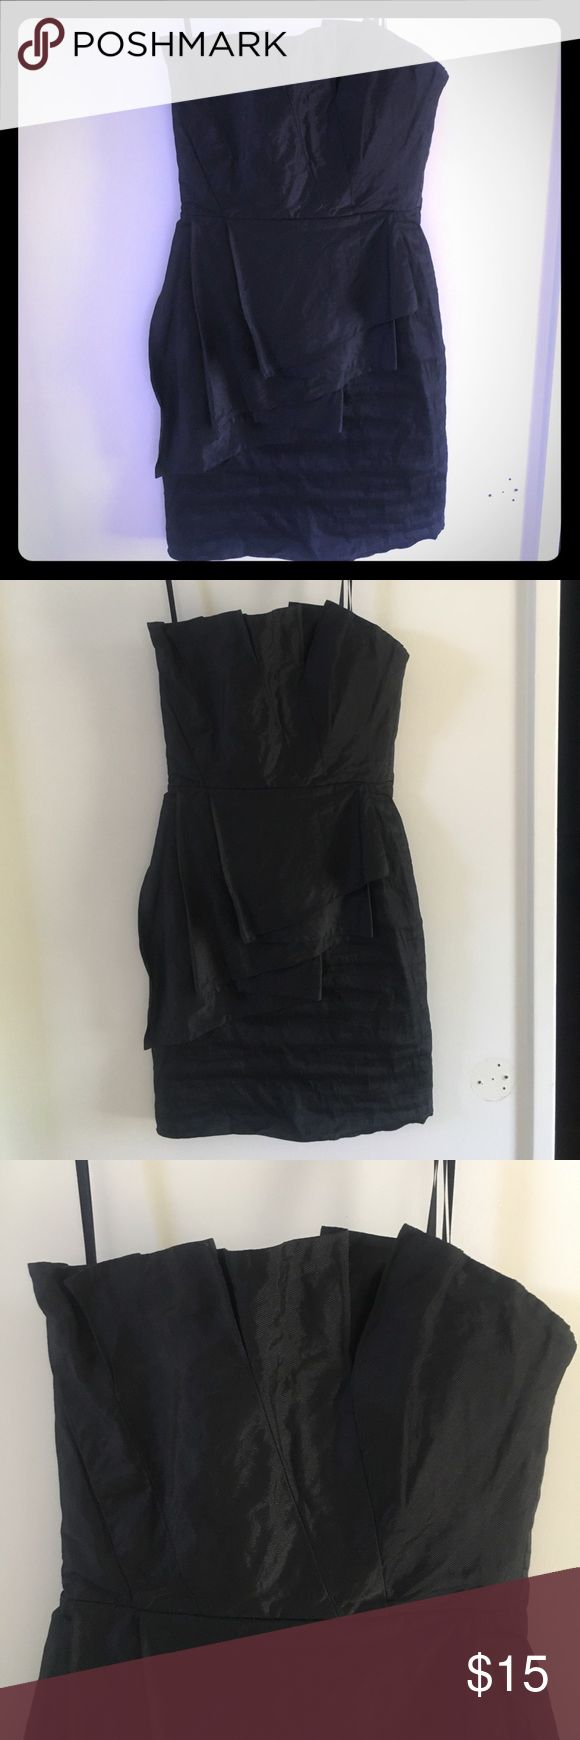 BCBG Max Azria black strapless minidress Size 2 Authentic BCBG MaxAzria short strapless cocktail dress. It needs to be steamed/ ironed (wrinkled) . The dress is intact but the liner is peeling off. Good condition. Priced accordingly. BCBGMaxAzria Dresses Strapless